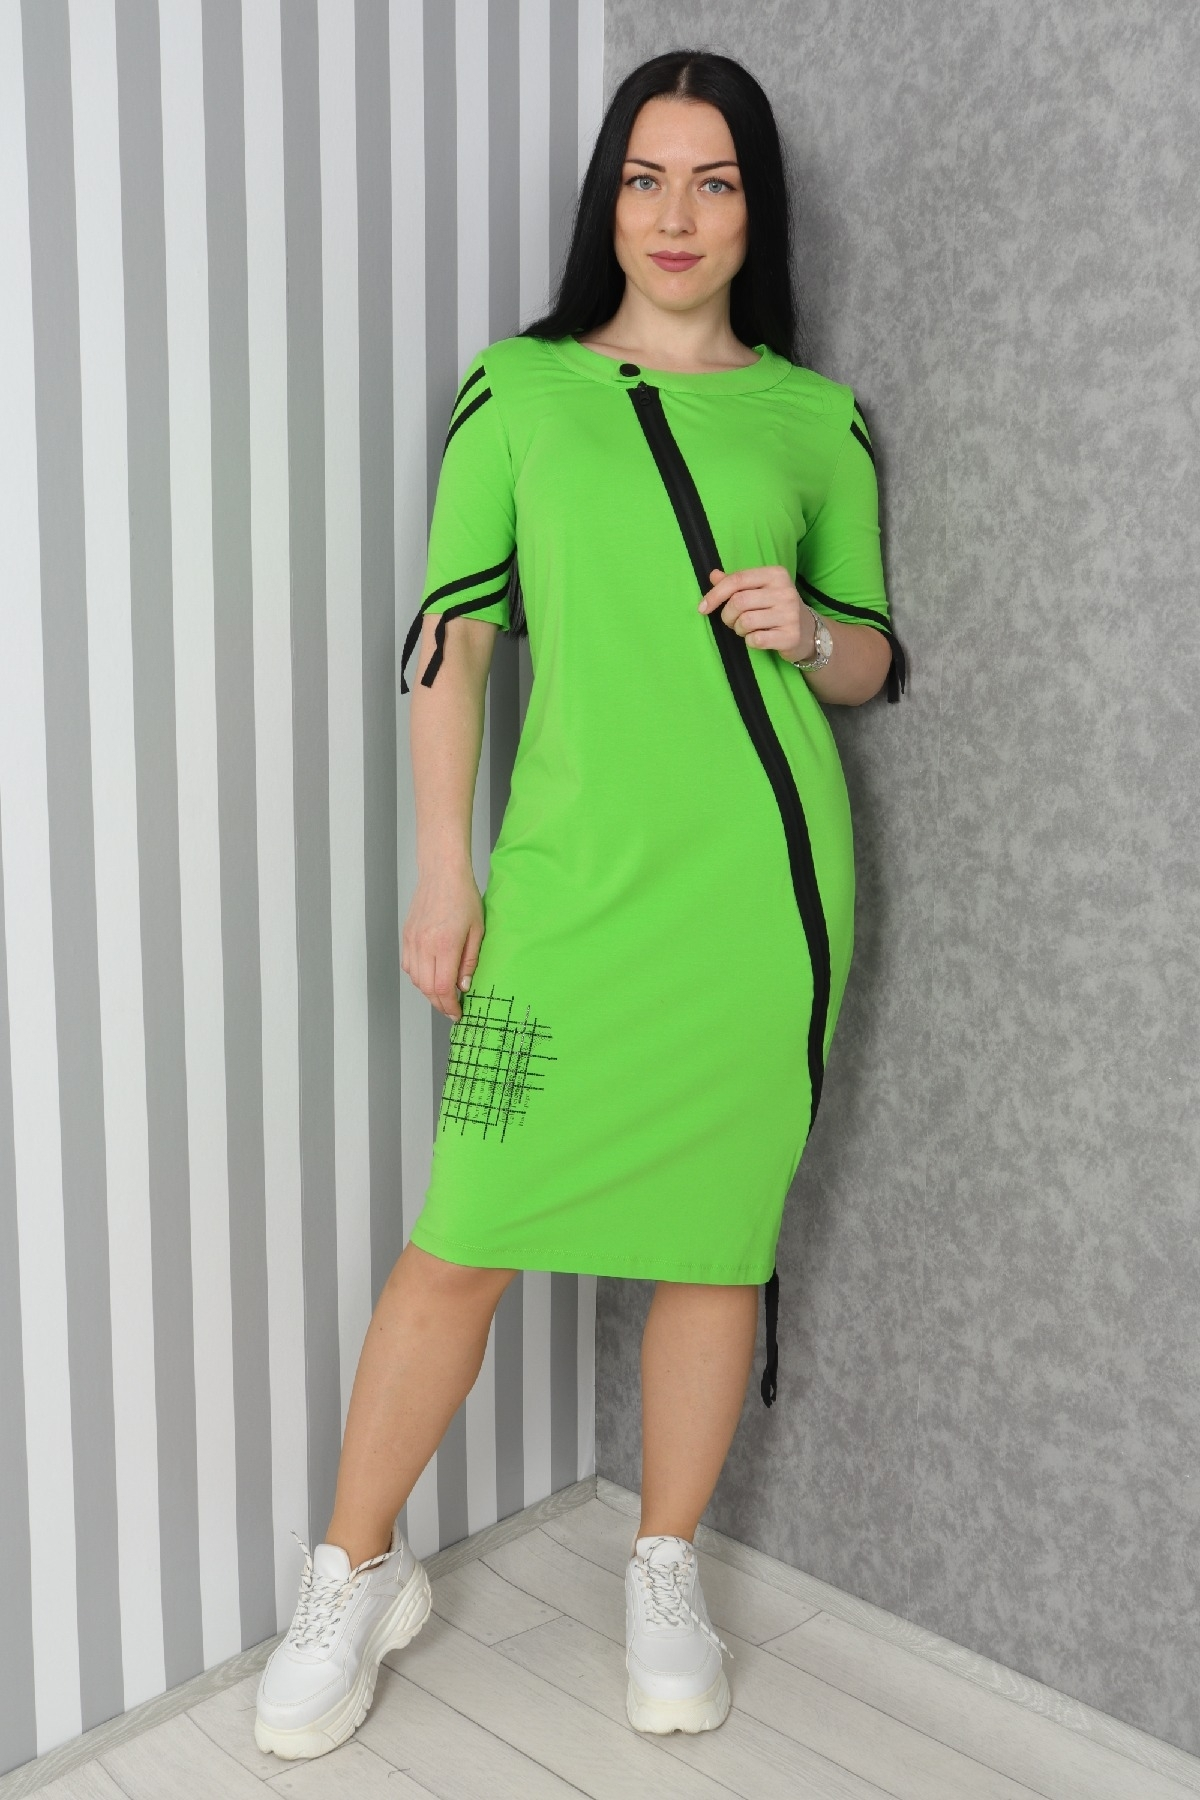 Striped, zipper  sport style dress with pockets